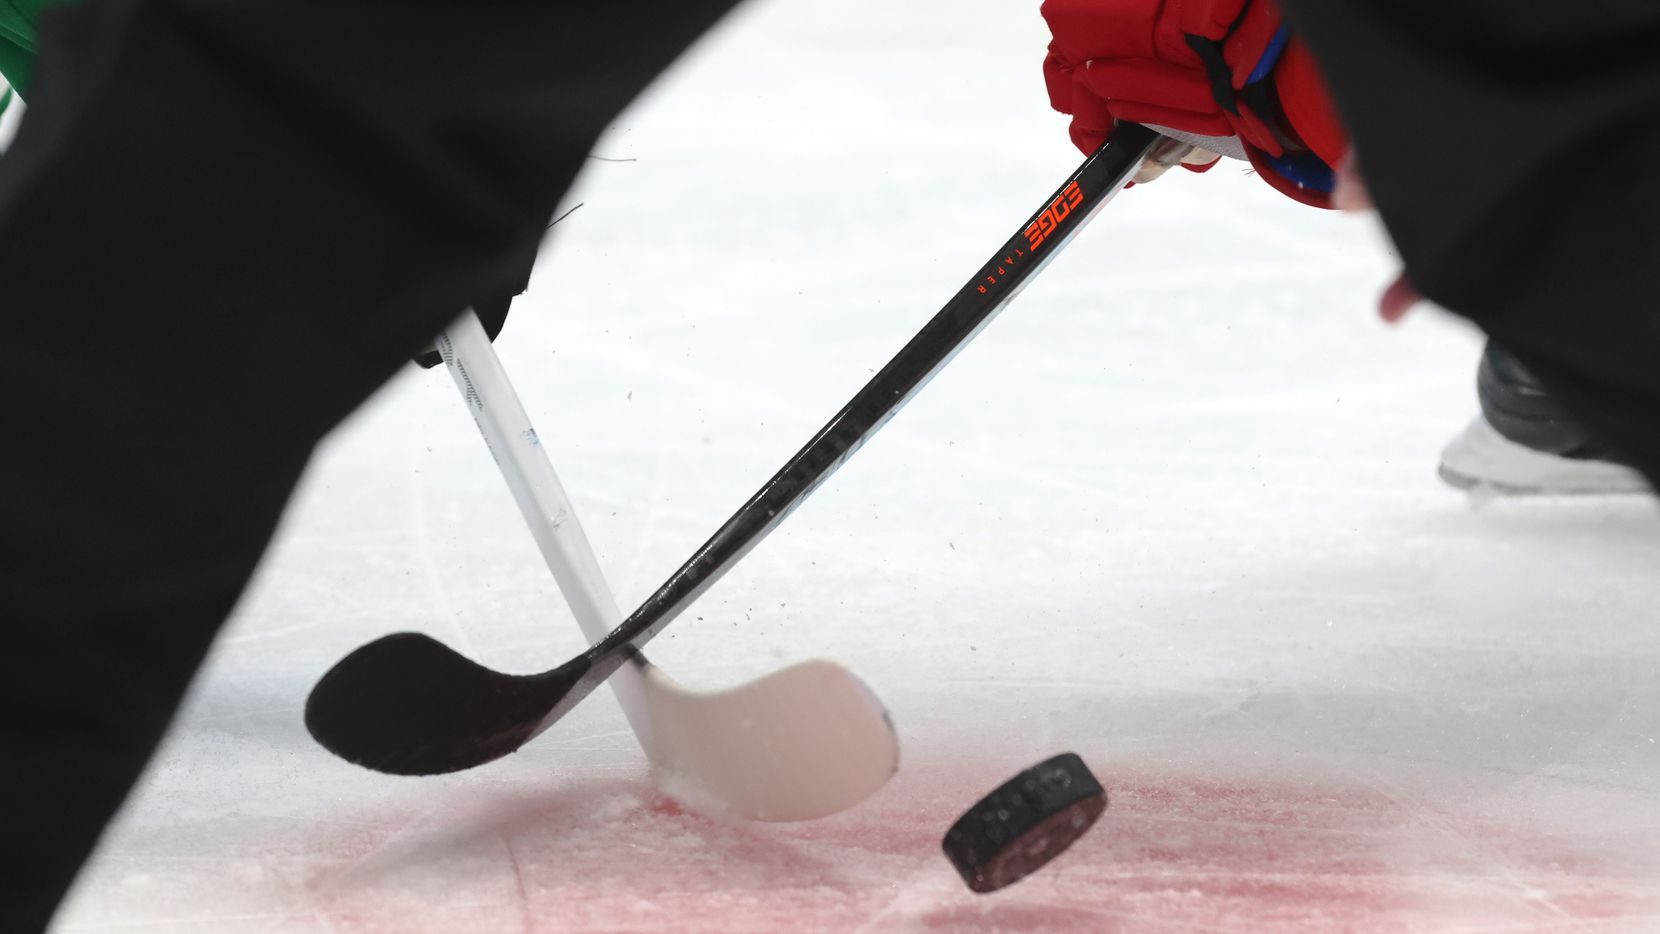 Players go after the puck during a faceoff in the first period of play between the Detroit Red Wings and Dallas Stars at American Airlines Center on Tuesday, January 26, 2021 in Dallas.